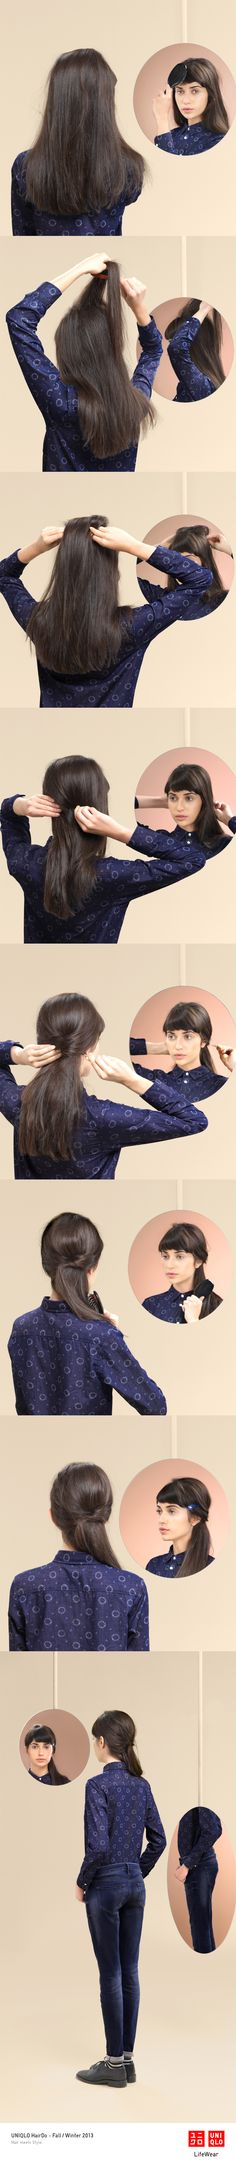 """""""THE LOW DOWN"""" : A quick and easy style, great with a pair of jeans for a day outside. Click the image for DIY instructions! #Twist #Hair #Hairstyle #DIY #UNIQLO #HairDo"""